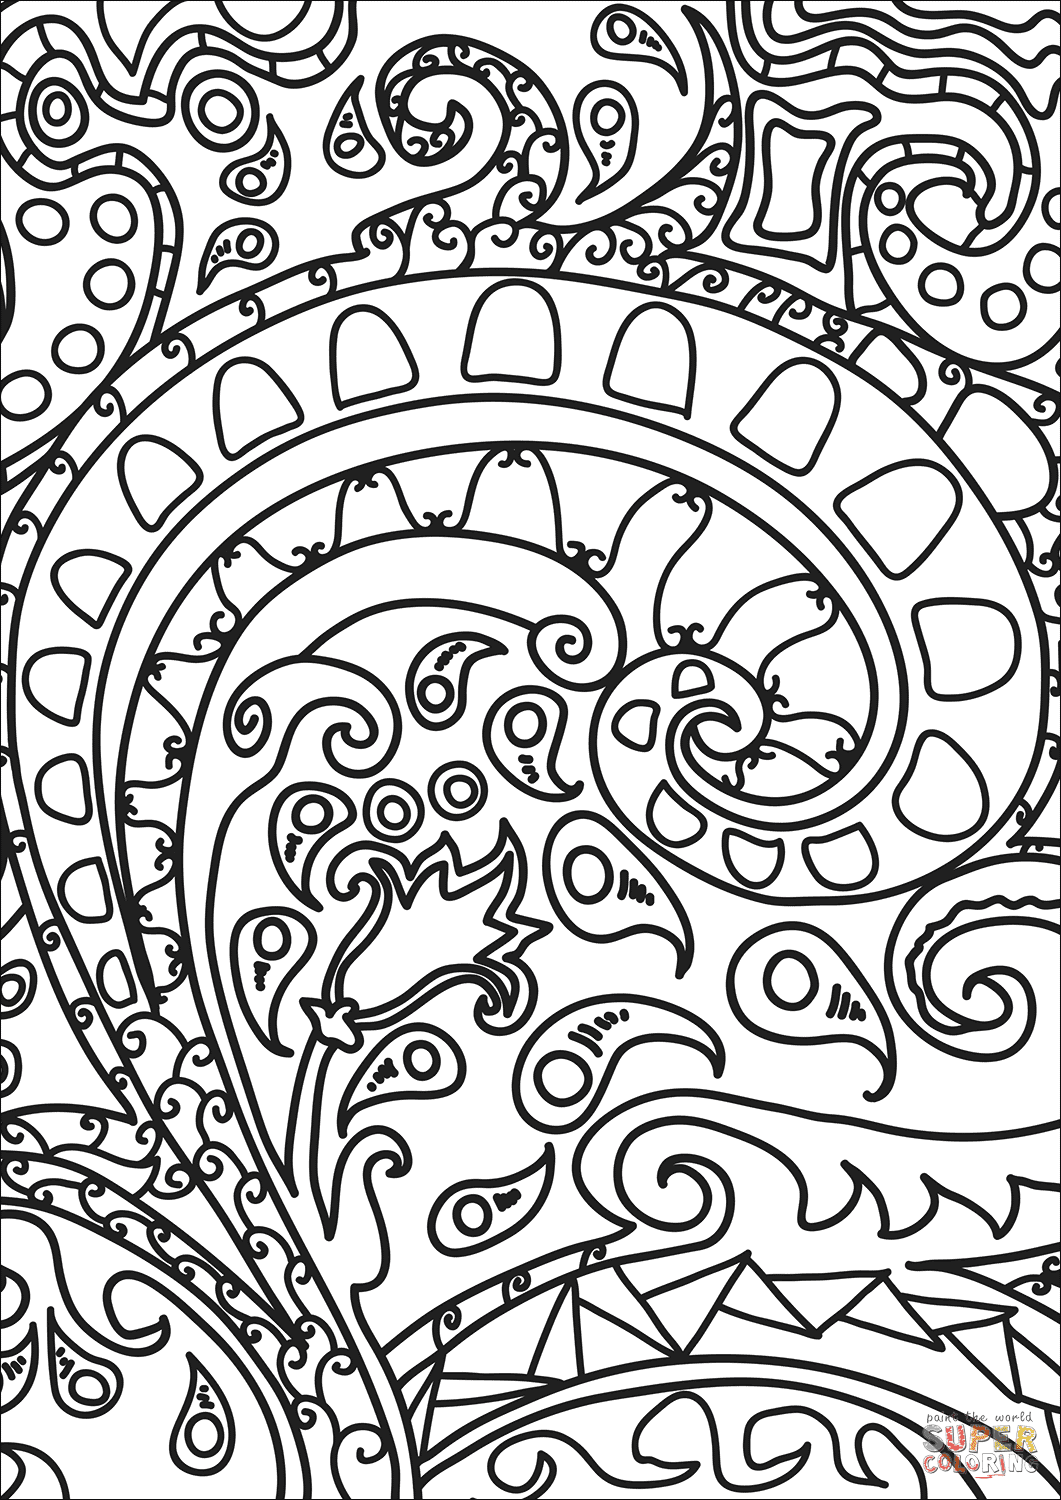 Abstract Doodle coloring page   Free Printable Coloring Pages